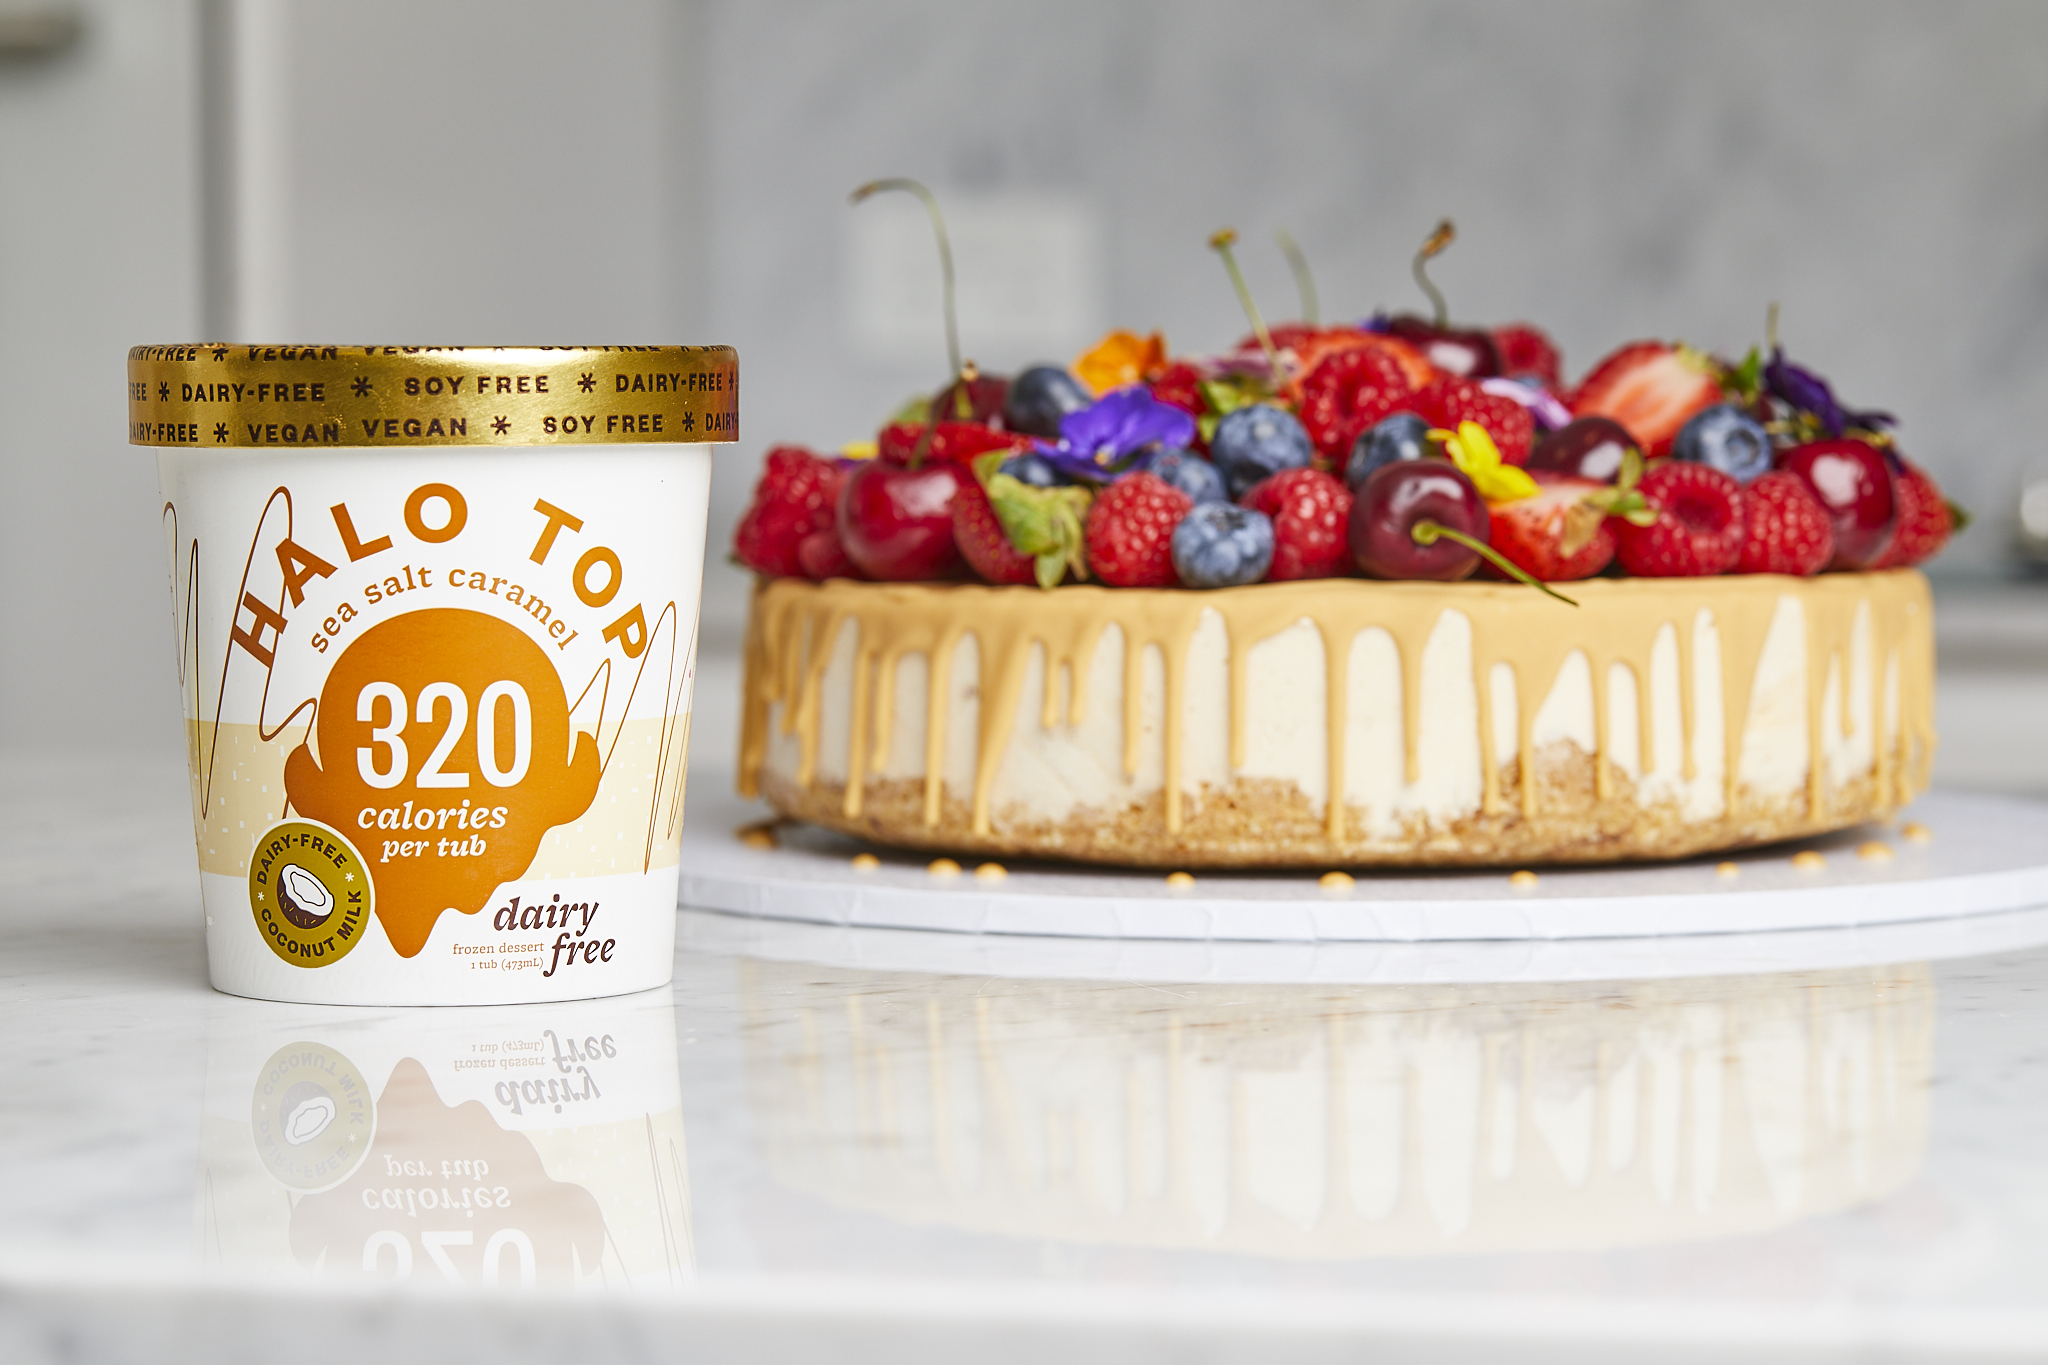 Halo Top Product Shot #2.jpg